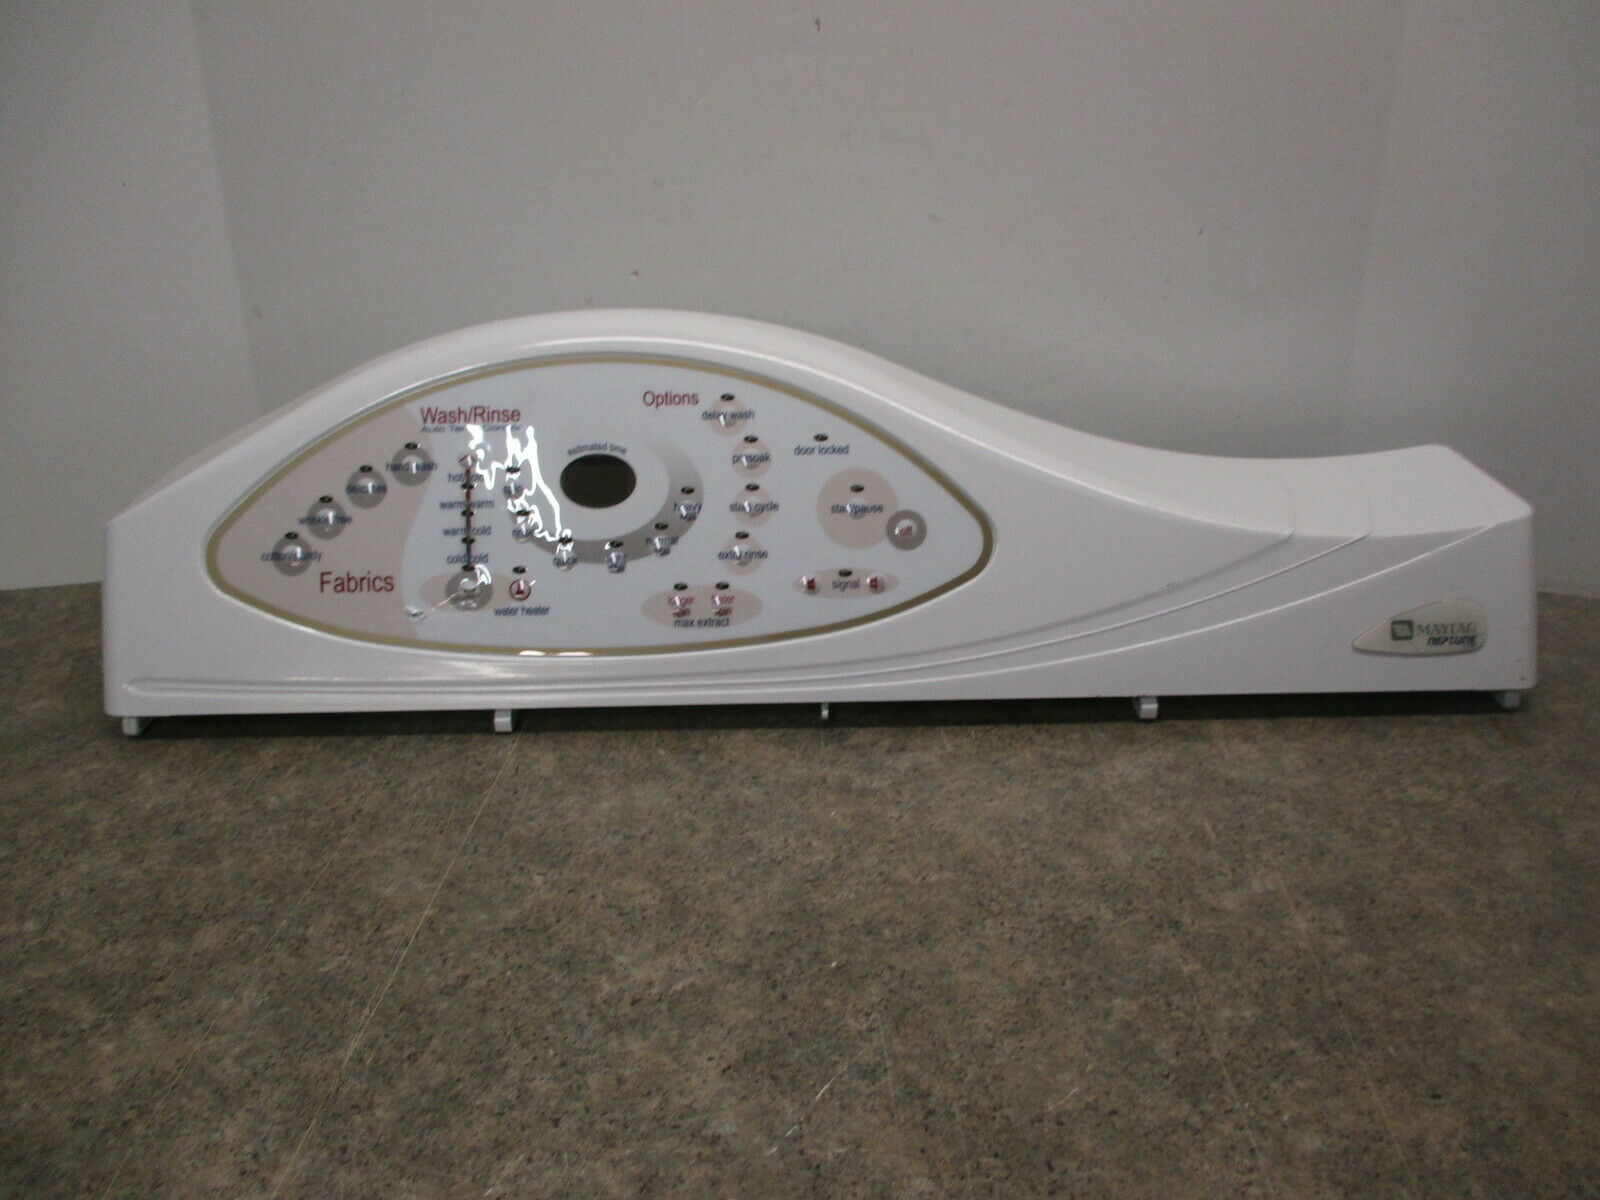 WHIRLPOOL WASHER CONTROL PANEL & CONTROL BOOARD PART # 22003910